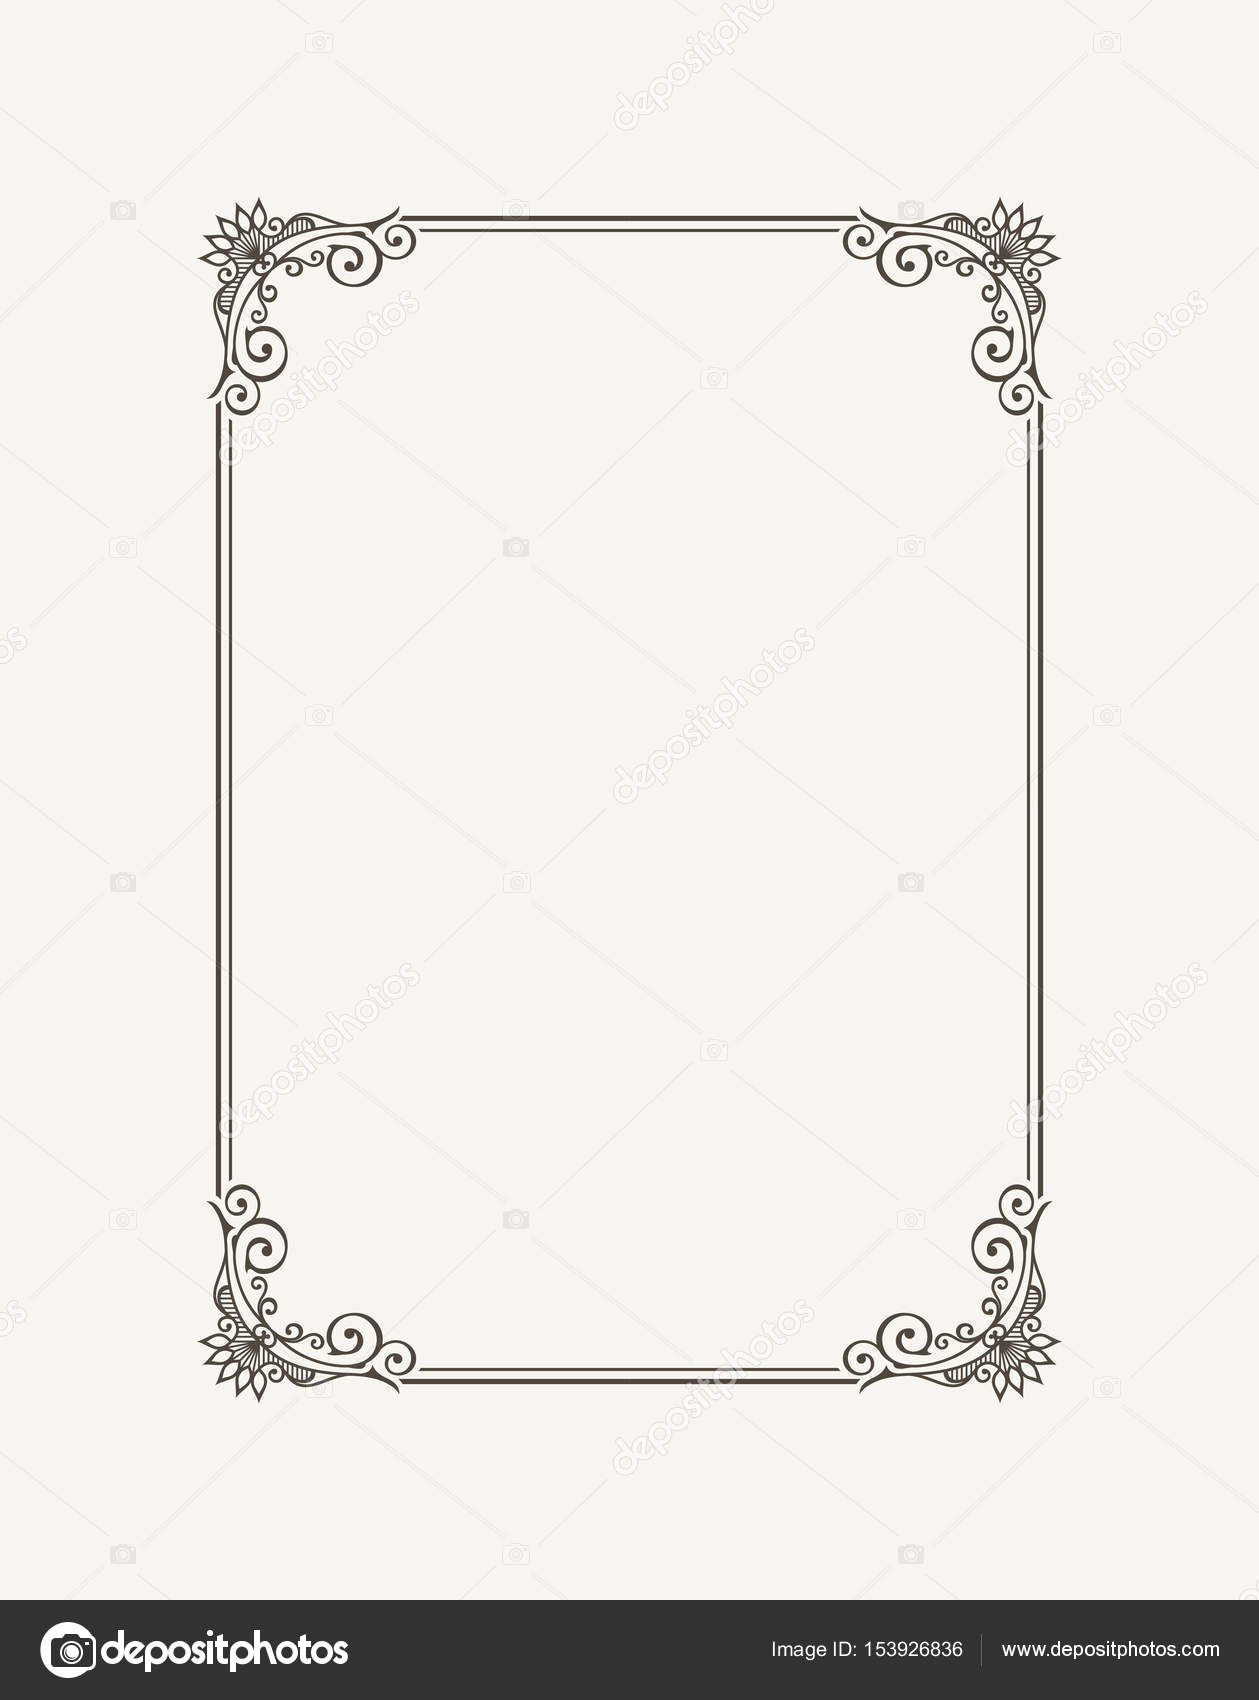 Vintage calligraphic frame. Black and white vector border of the ...